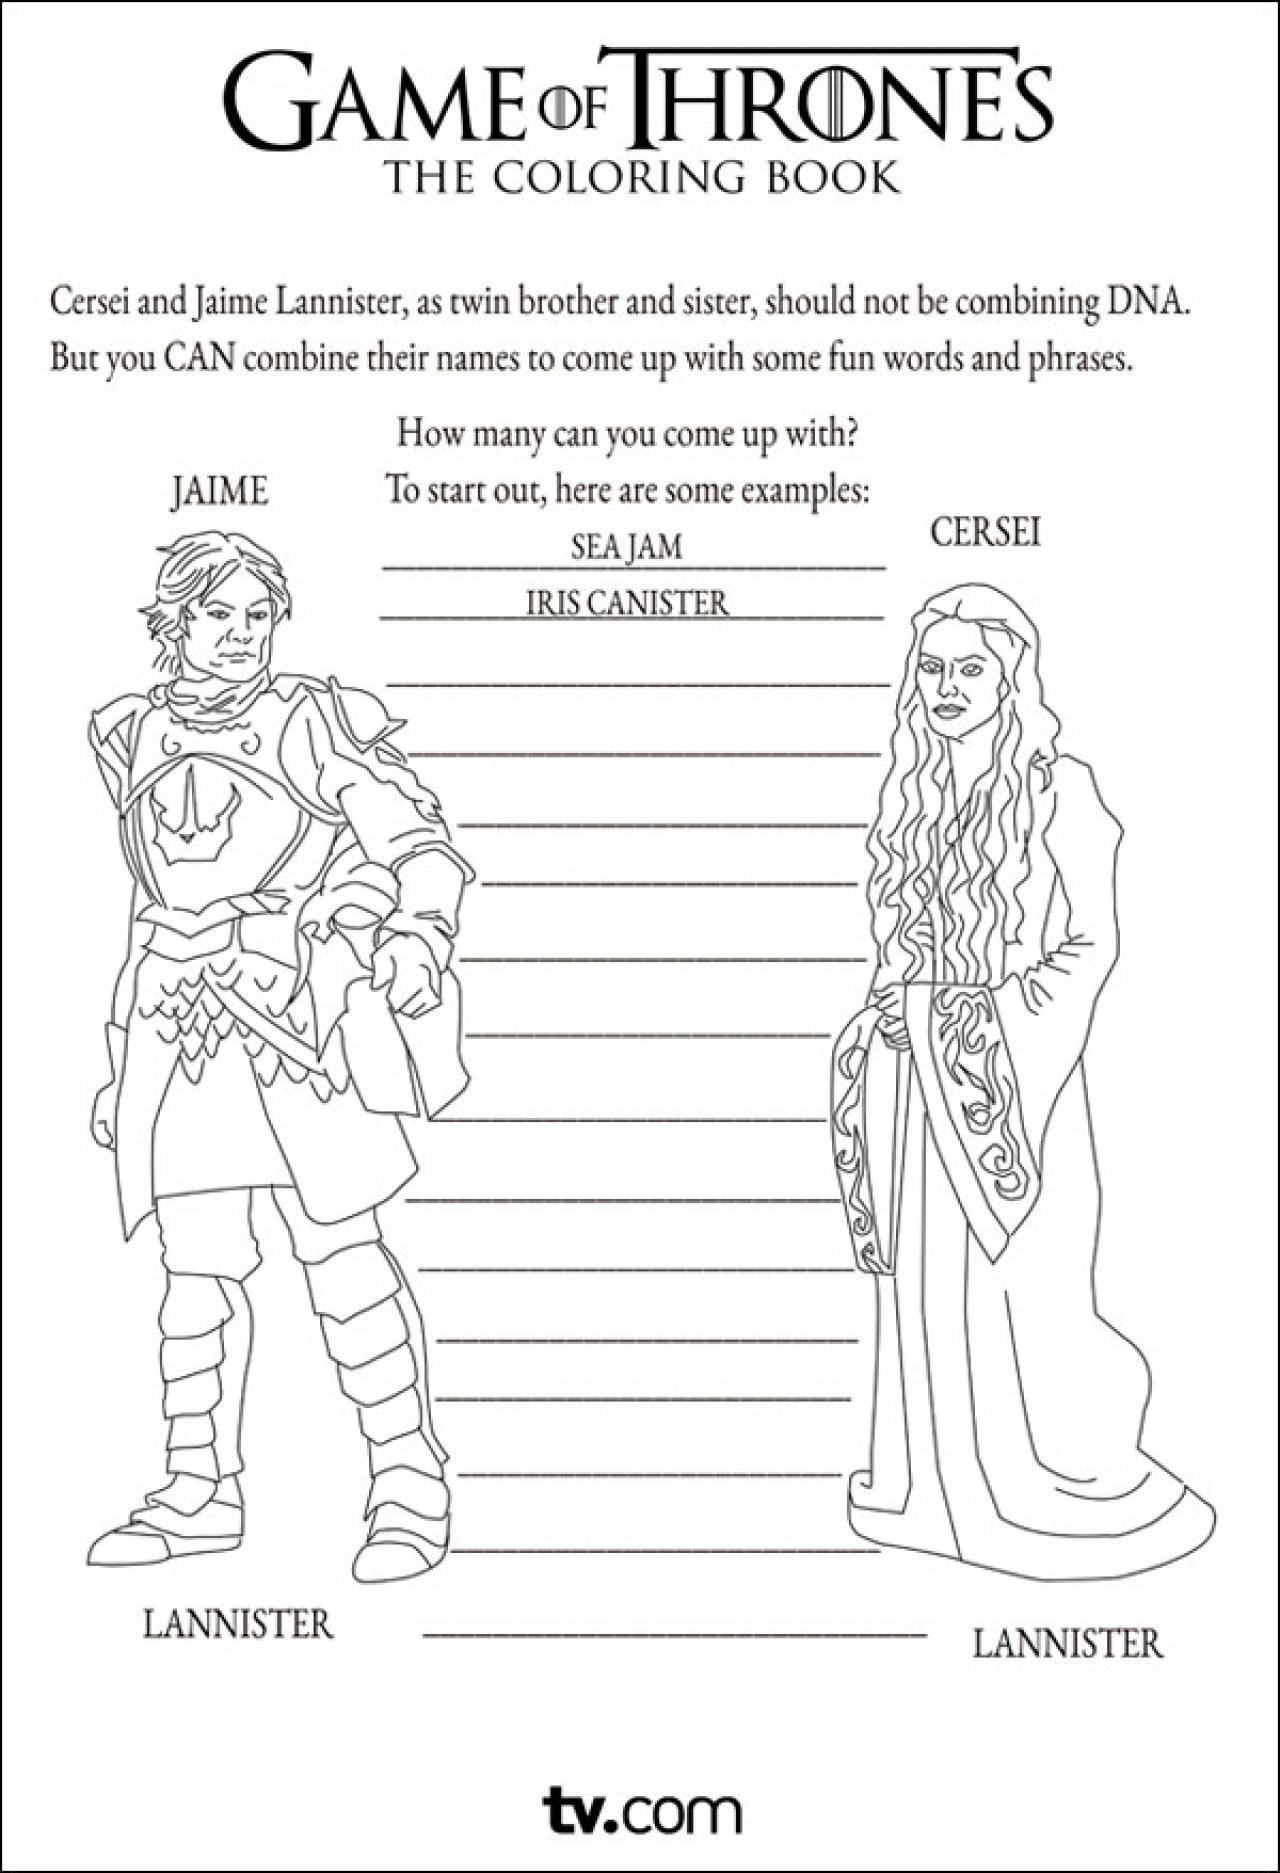 Hilarious Game Of Thrones Coloring Book Brings Winter To